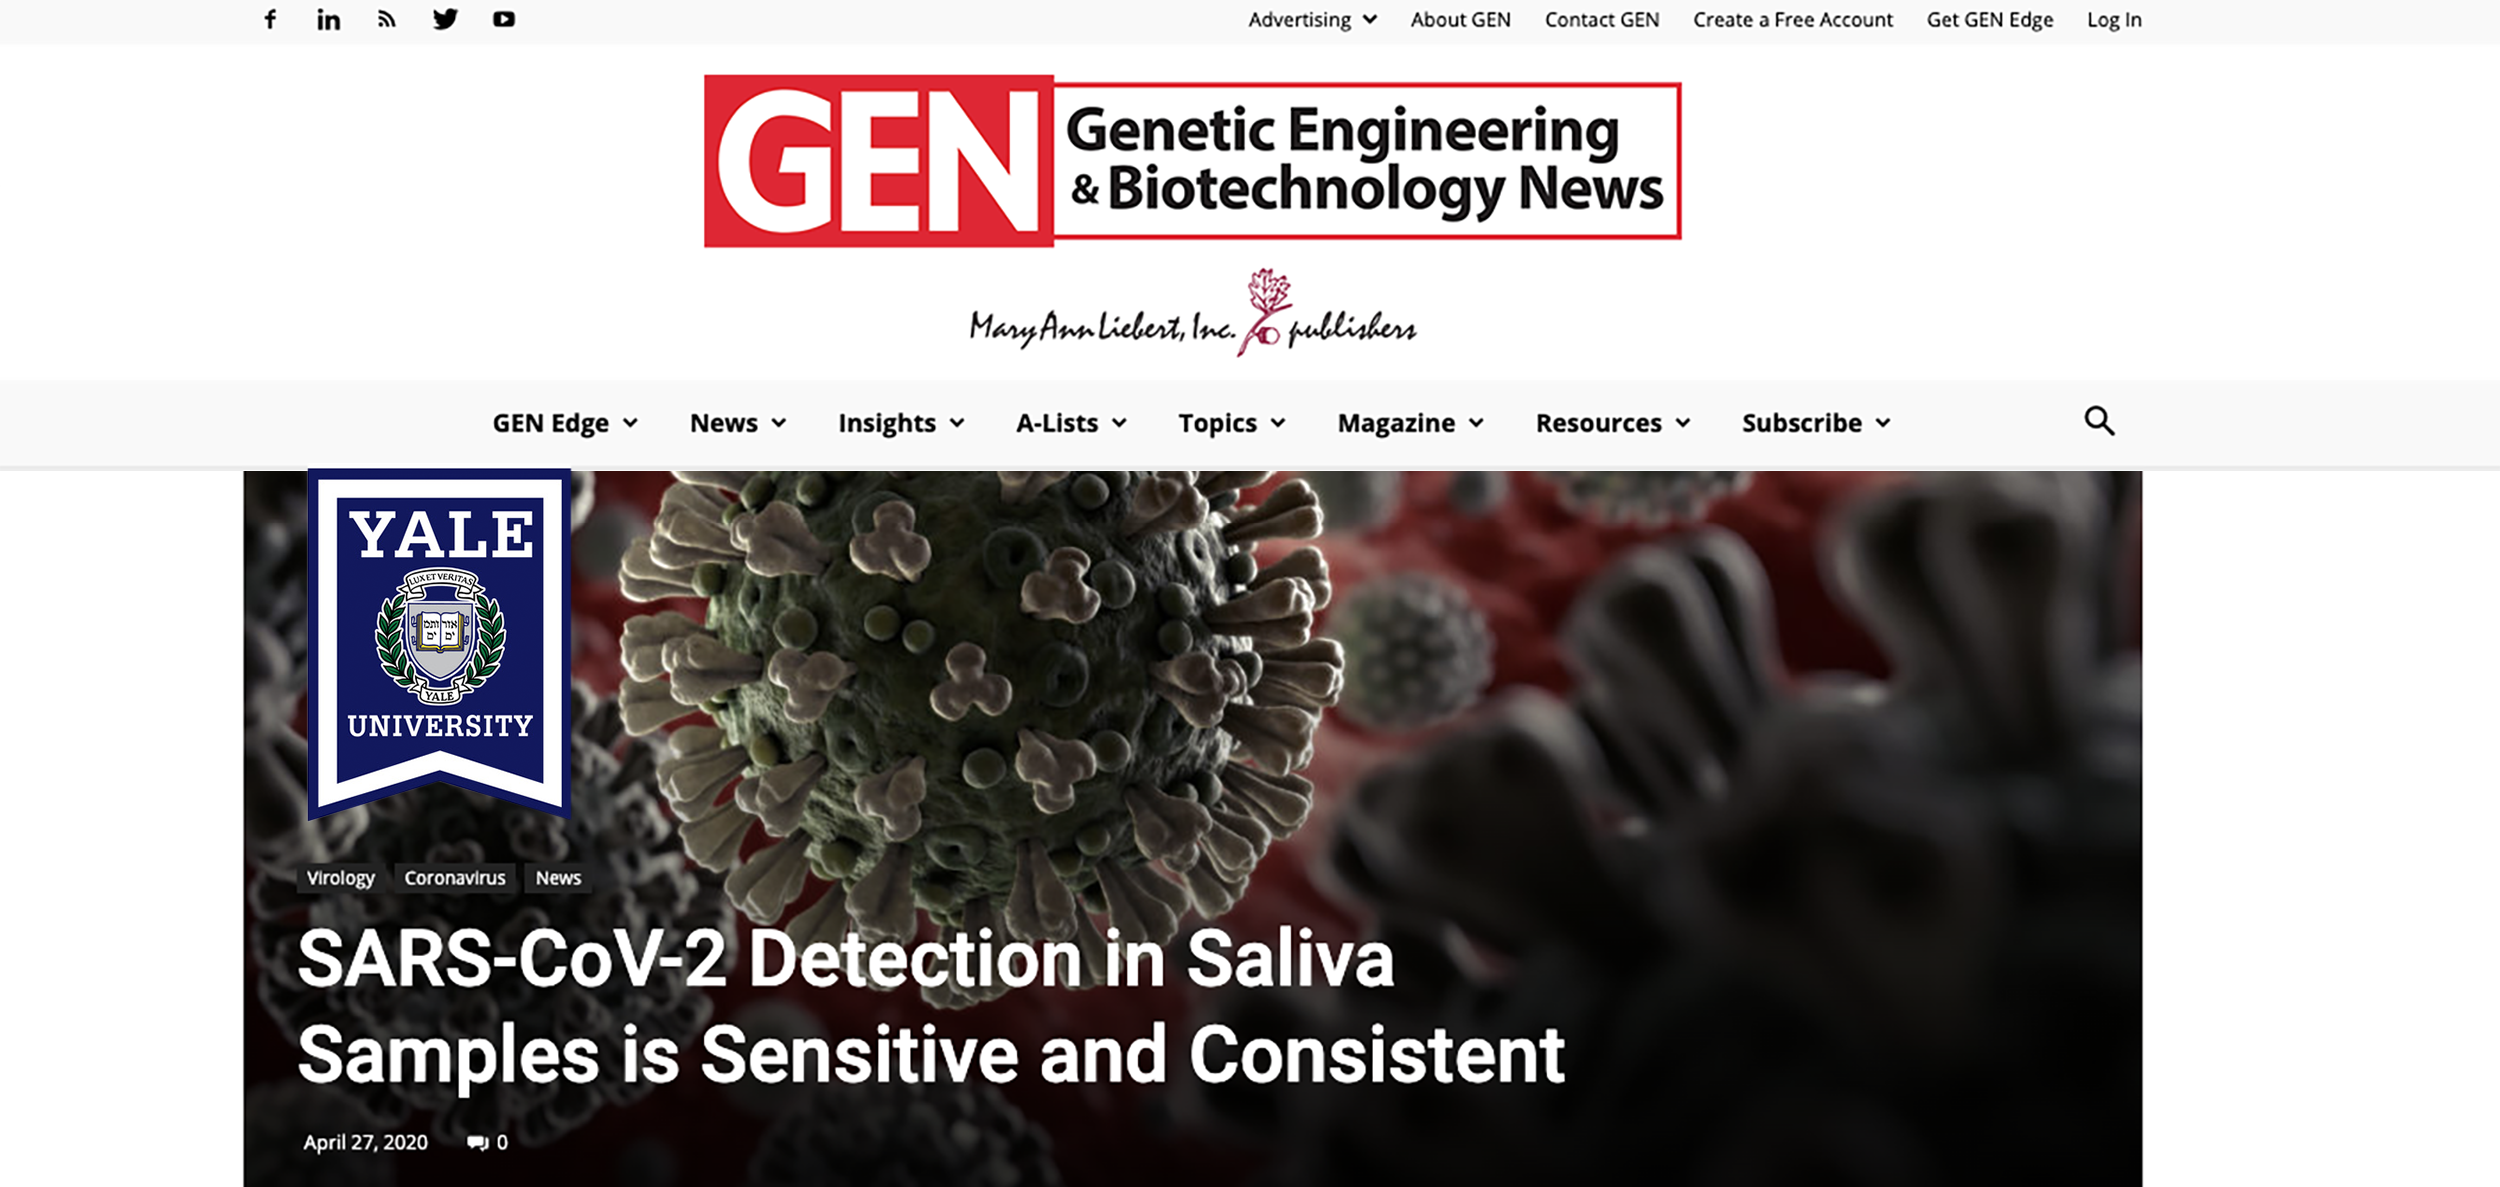 GENETIC ENGINEERING AND BIOTECH NEWS-SALIVA COLLECTION AFFIRMED IN COVID-19 TESTING